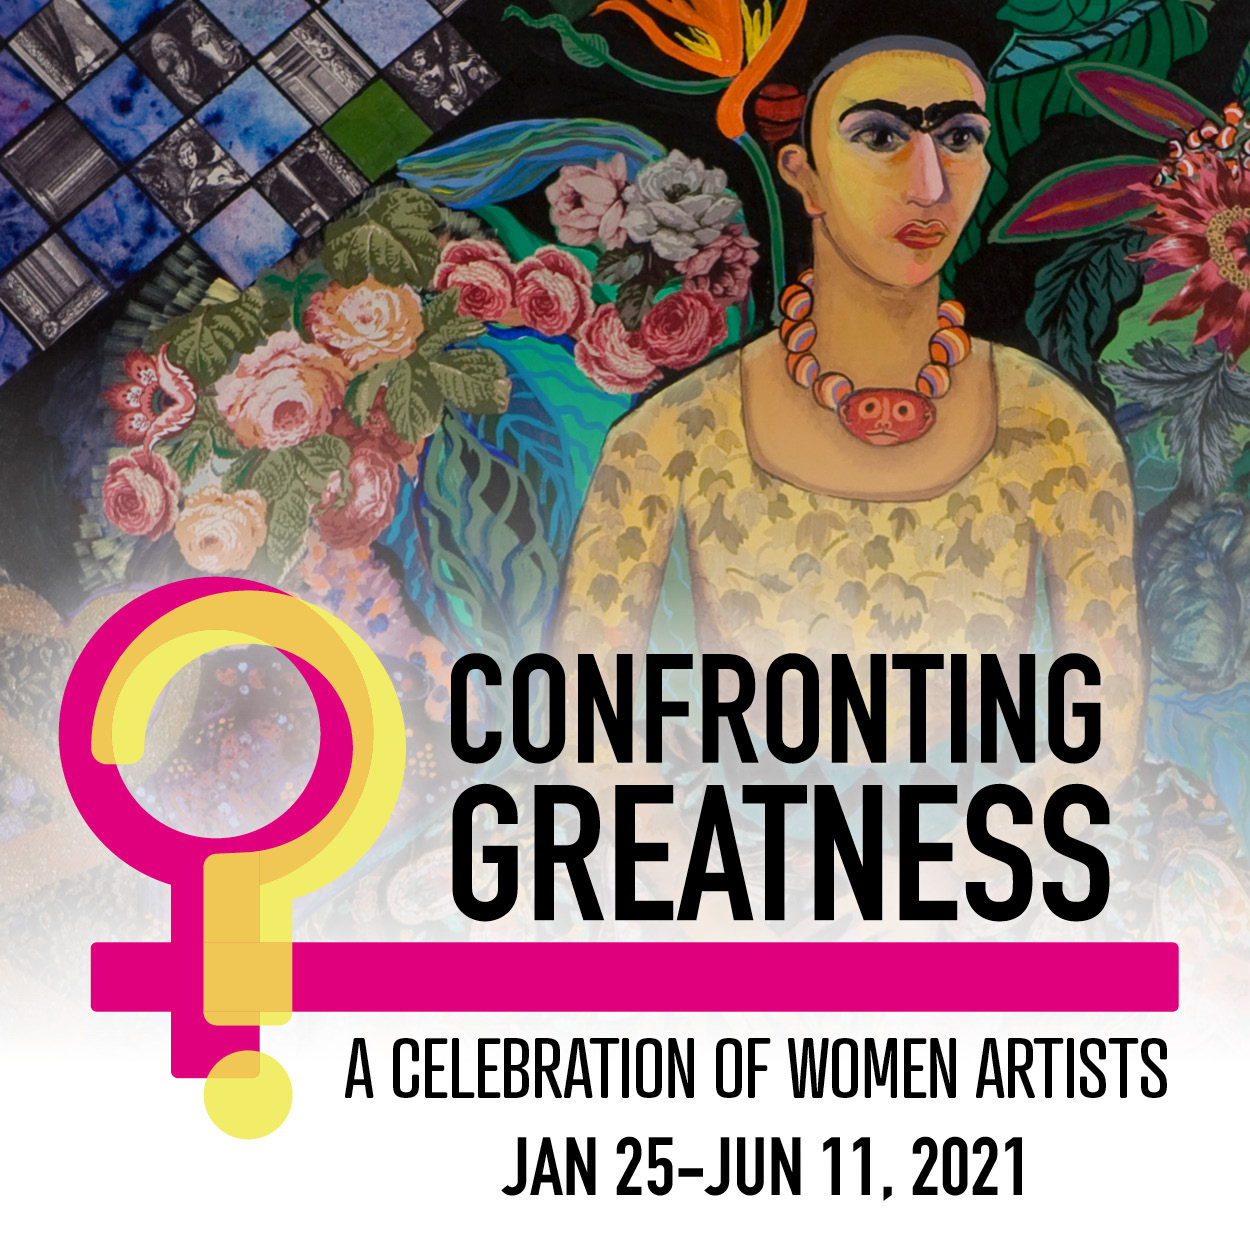 Confronting Greatness Exhibition